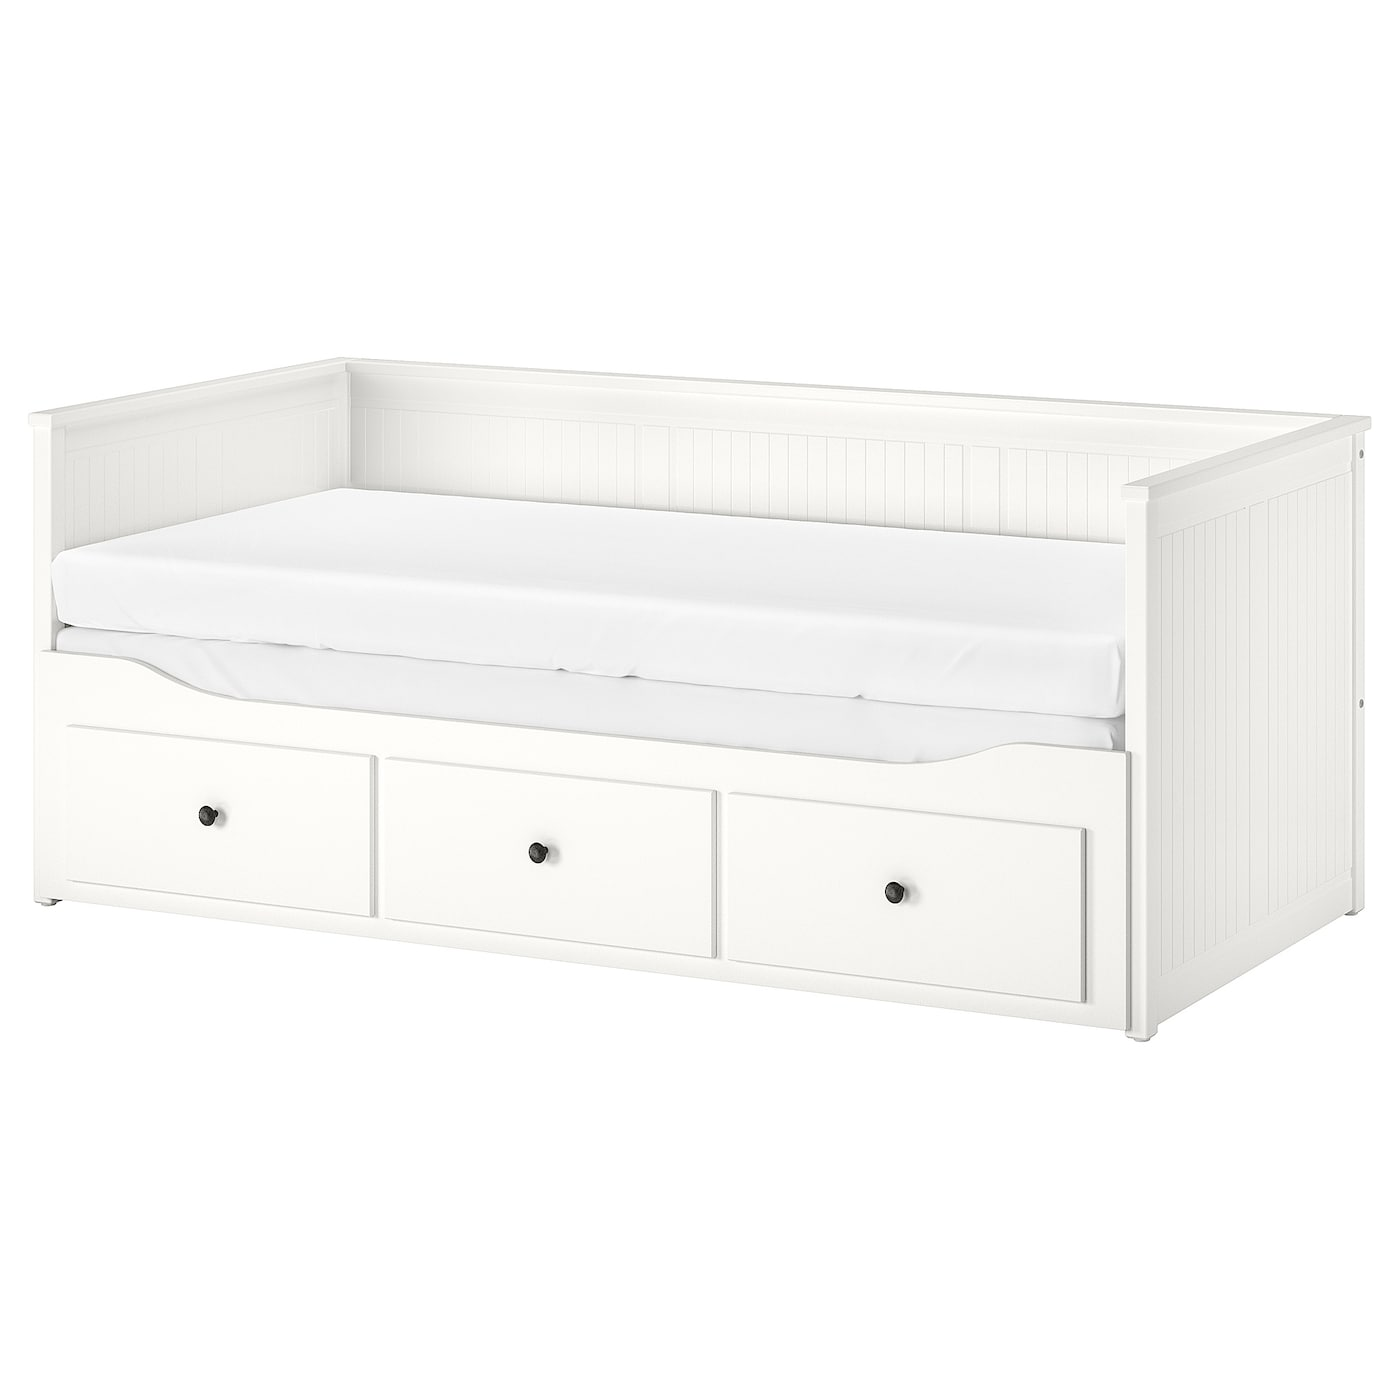 Peachy Hemnes Daybed Frame With 3 Drawers White Download Free Architecture Designs Sospemadebymaigaardcom